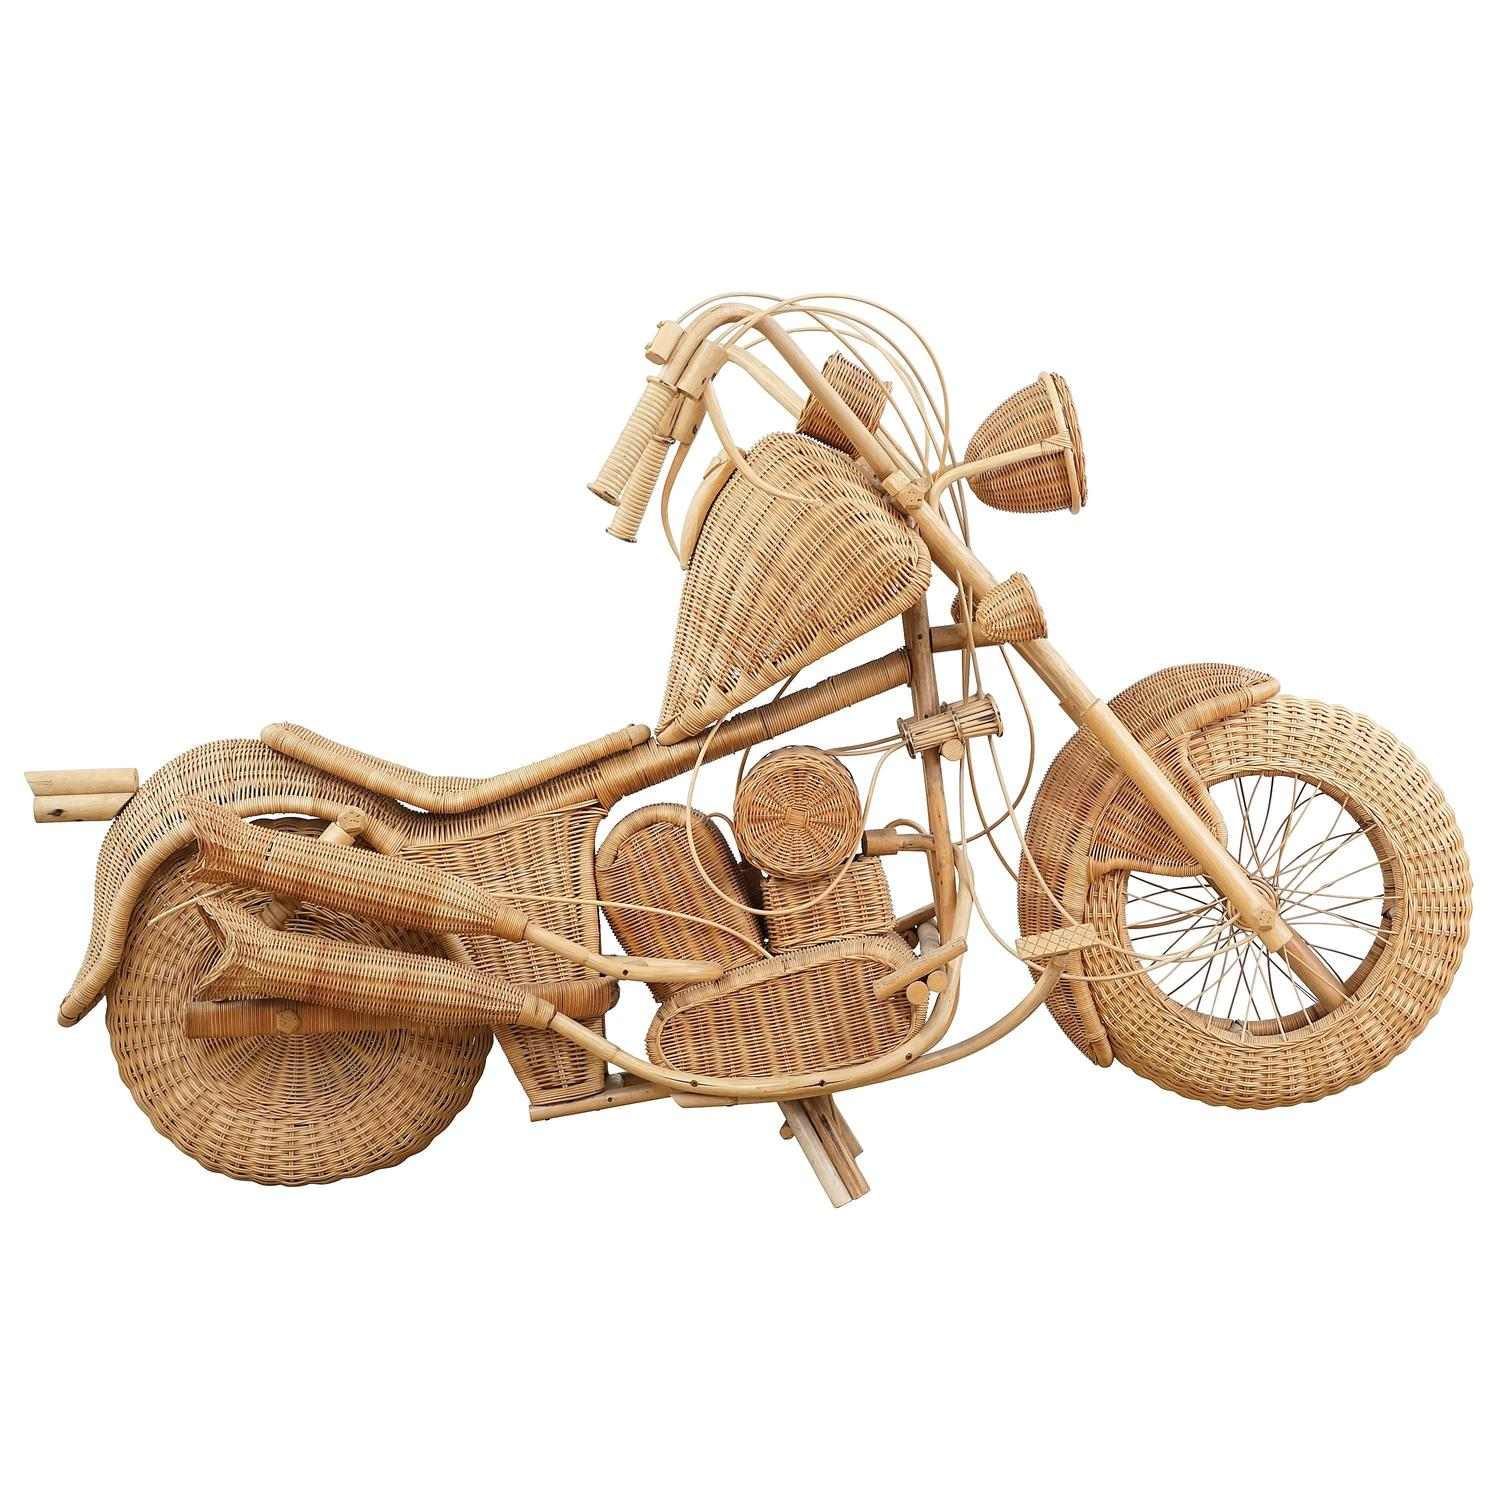 Vintage Wicker Motorcycle For Sale at 1stdibs